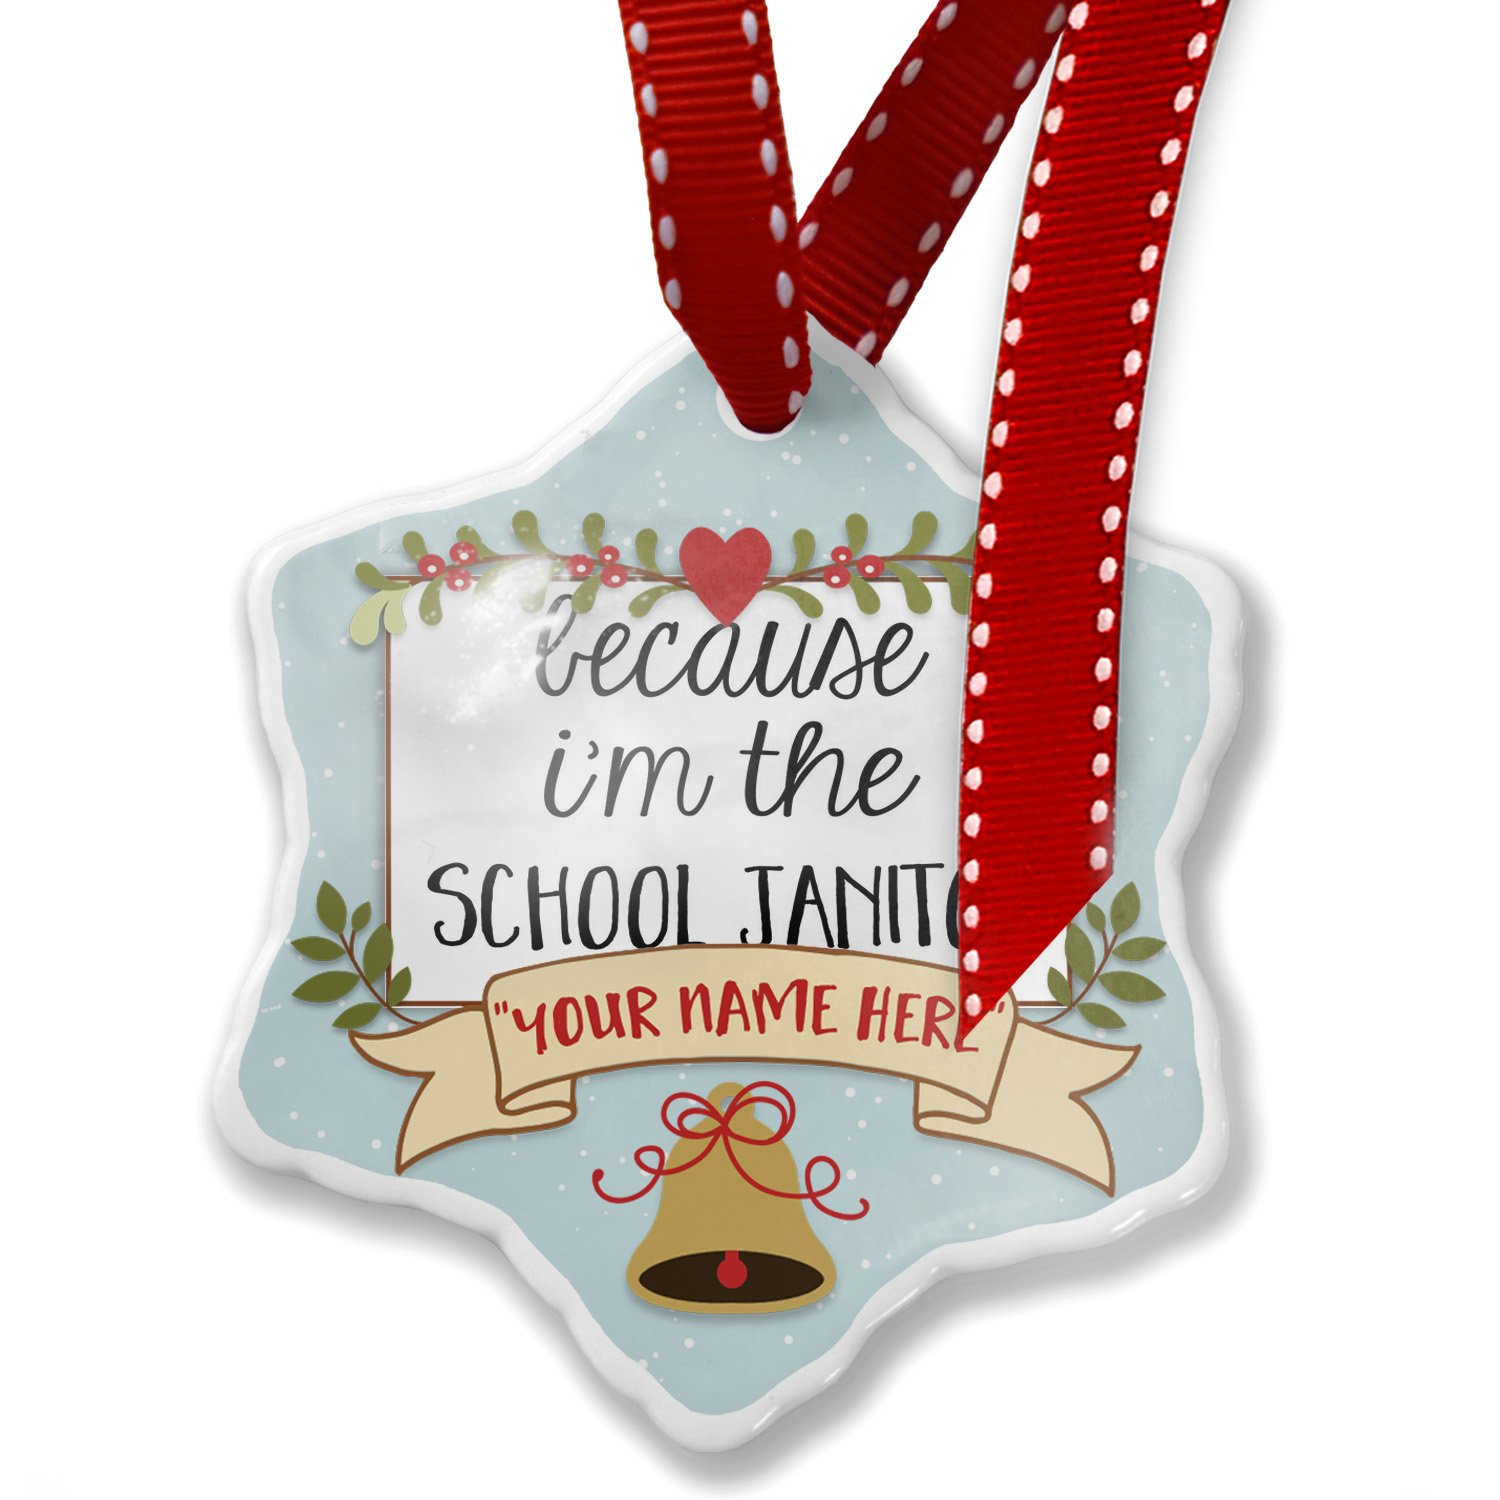 Add Your Own Custom Name, Because I'm The School Janitor Funny Saying Christmas Ornament NEONBLOND